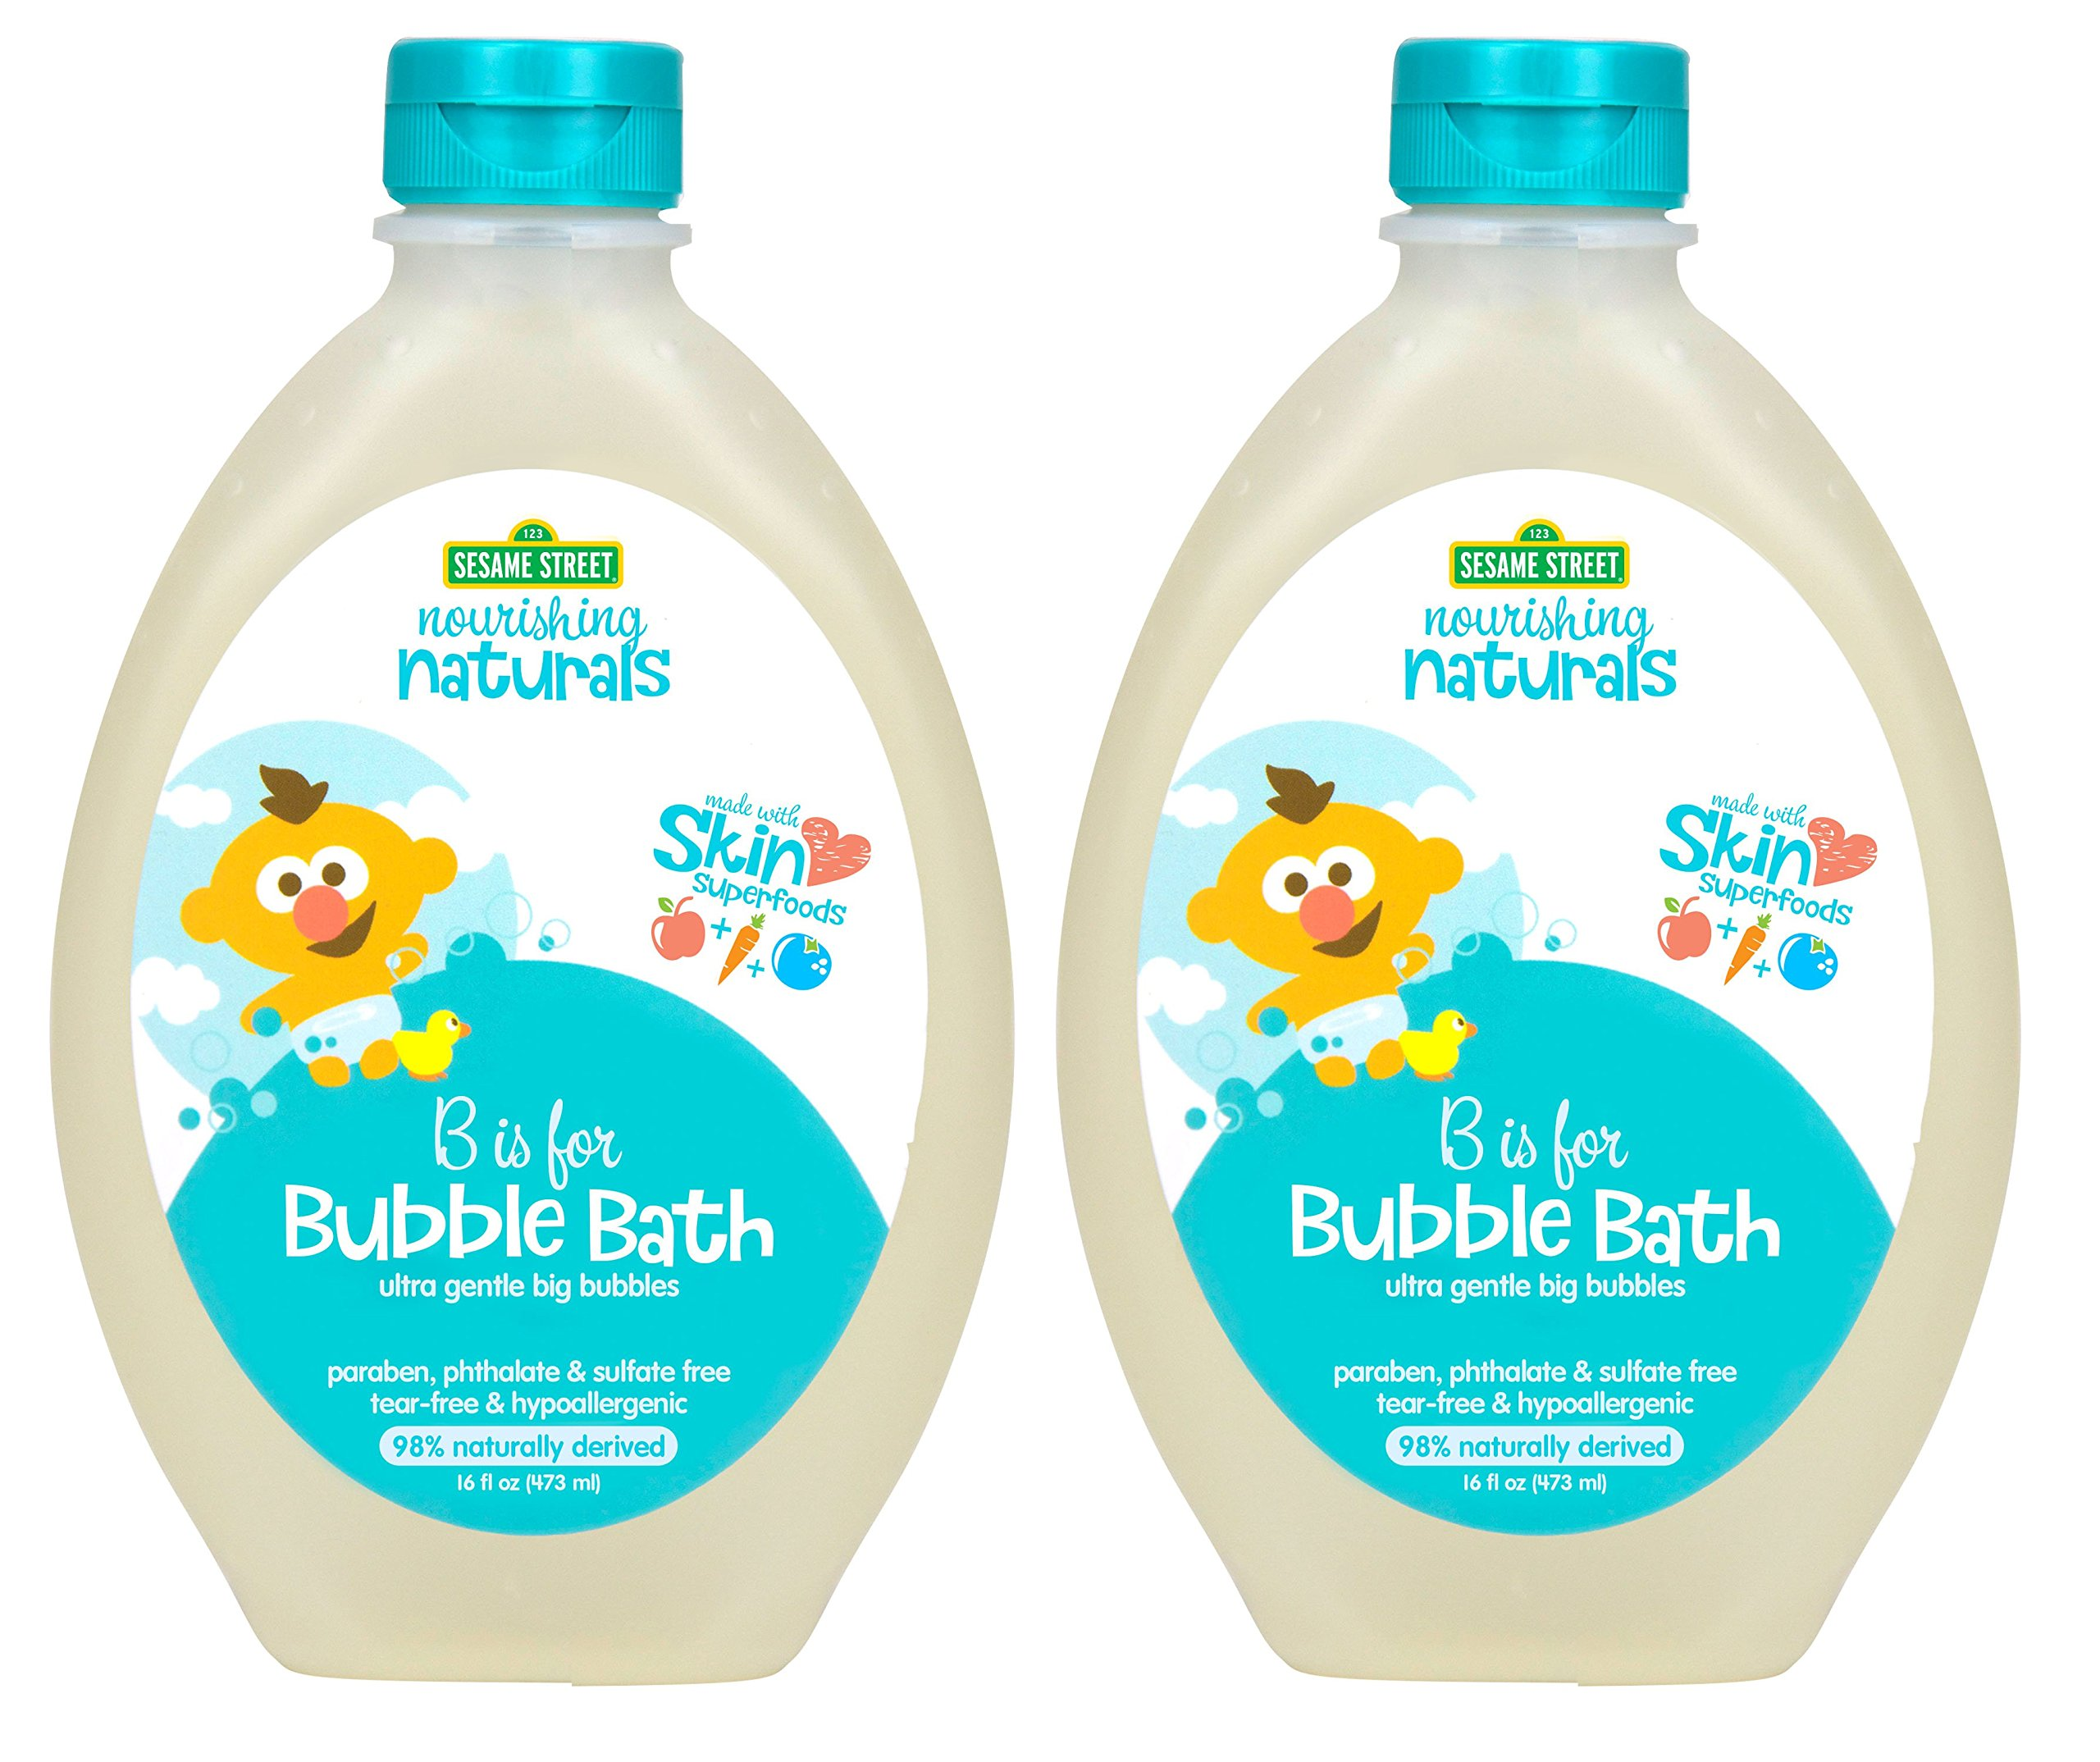 Sesame Street Nourishing Naturals Bubble Bath 16 oz 2 Pack